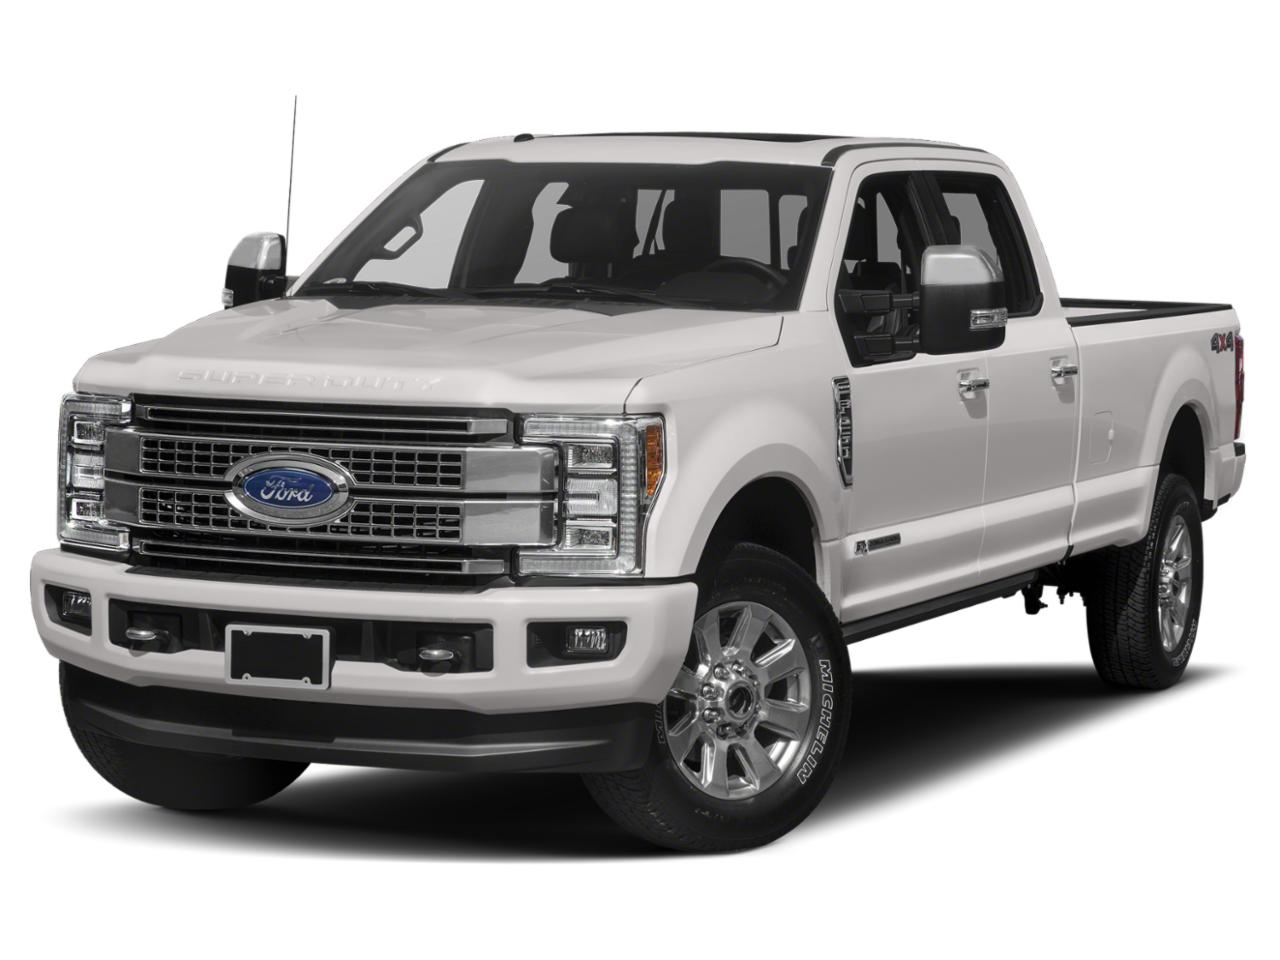 2019 Ford Super Duty F-250 SRW Vehicle Photo in Oklahoma City, OK 73114